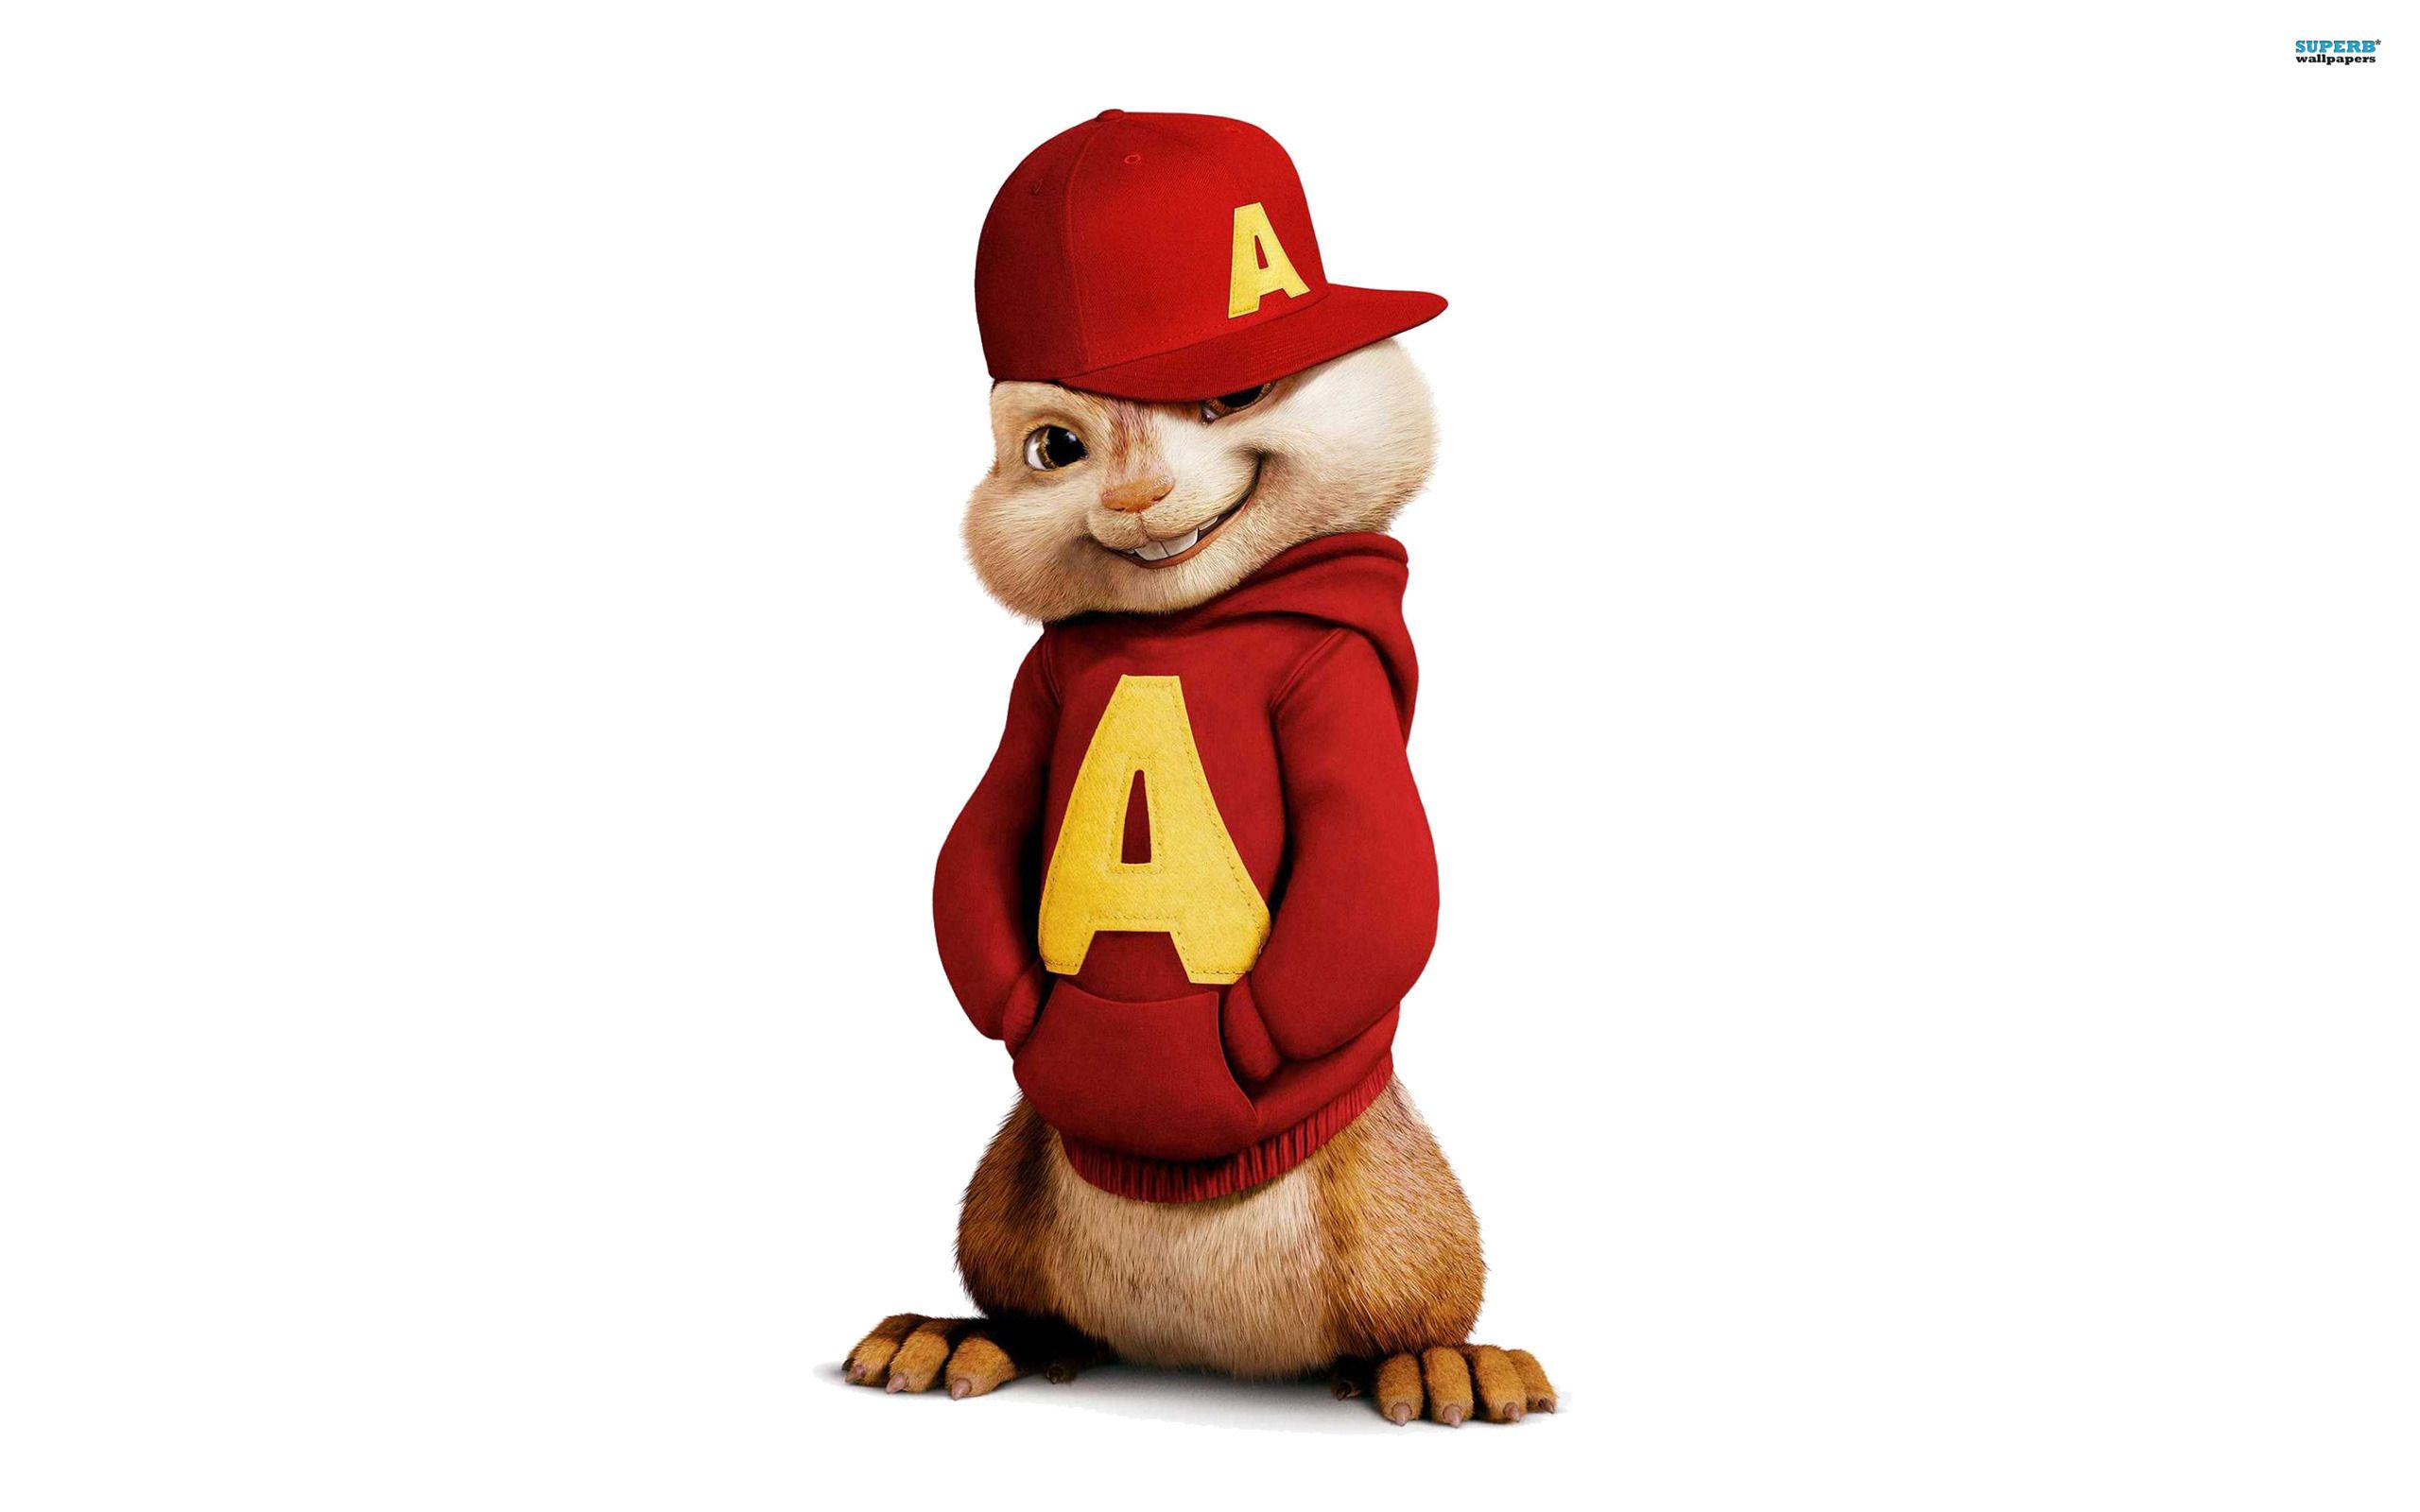 Alvin Hd Wallpaper Cartoon Wallpaper Alvin And The Chipmunks